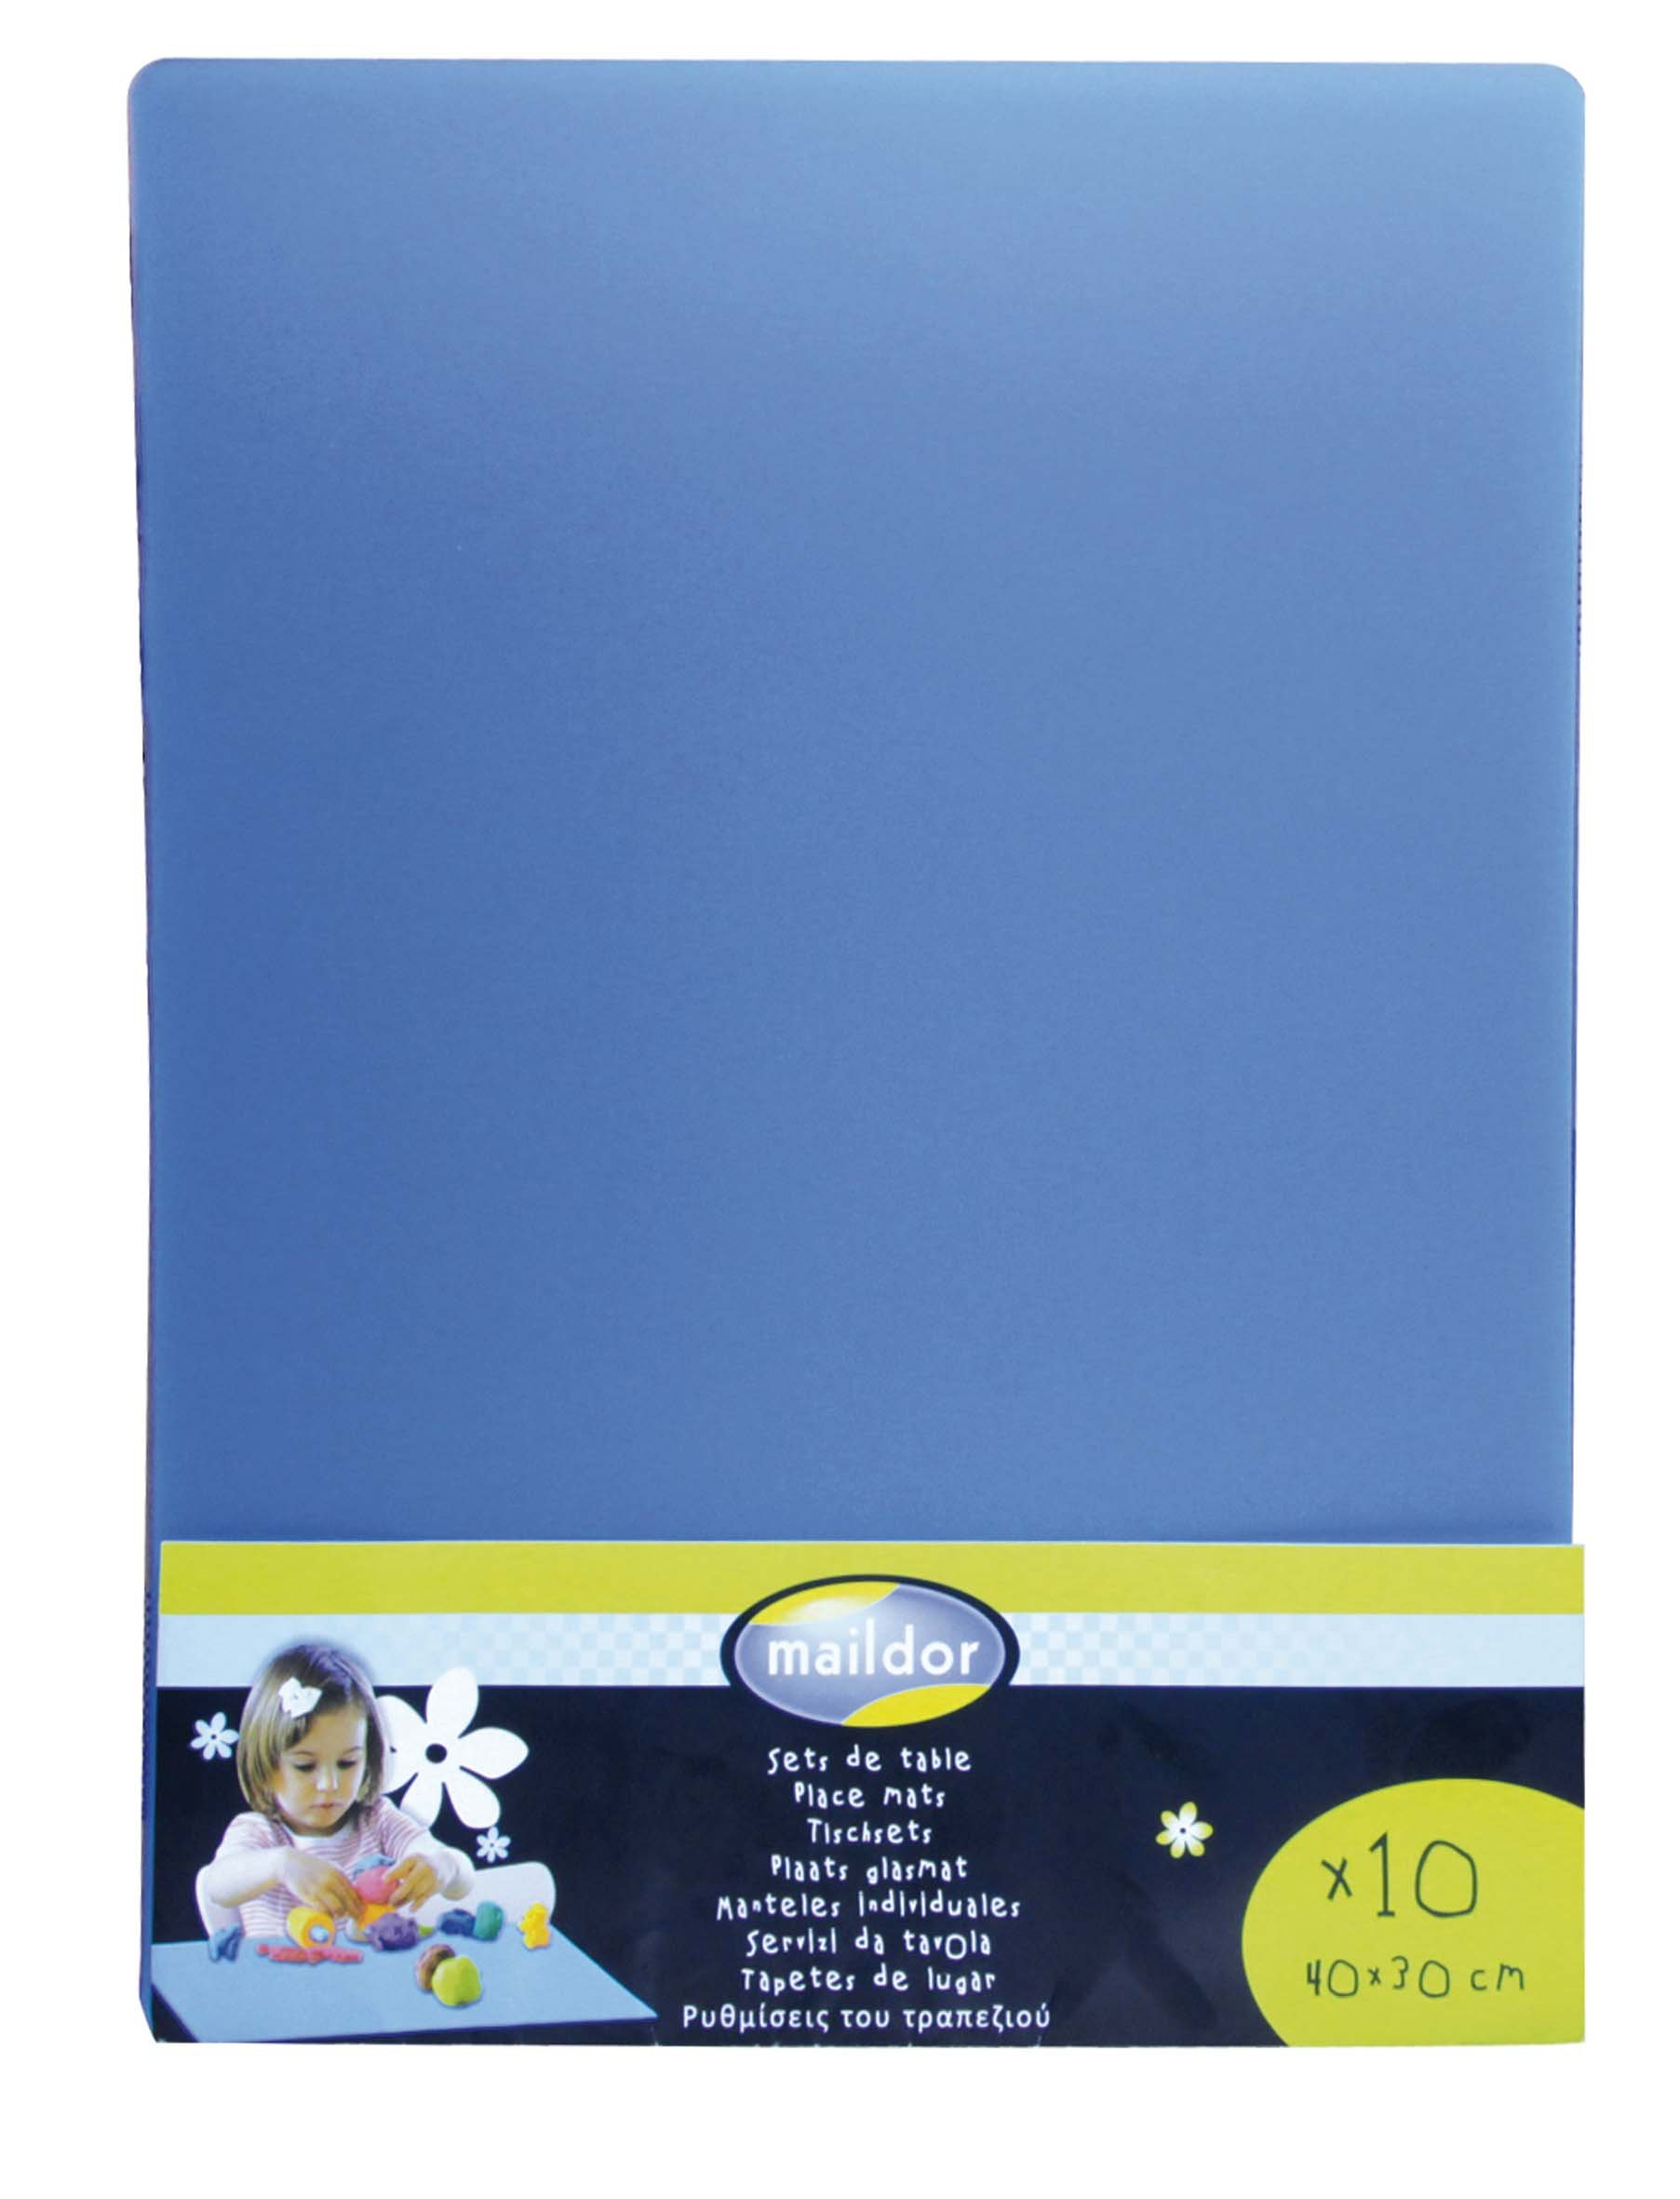 Maildor 40 x 30 cm Table Mats, Pack of 10, Multi-Color by Maildor